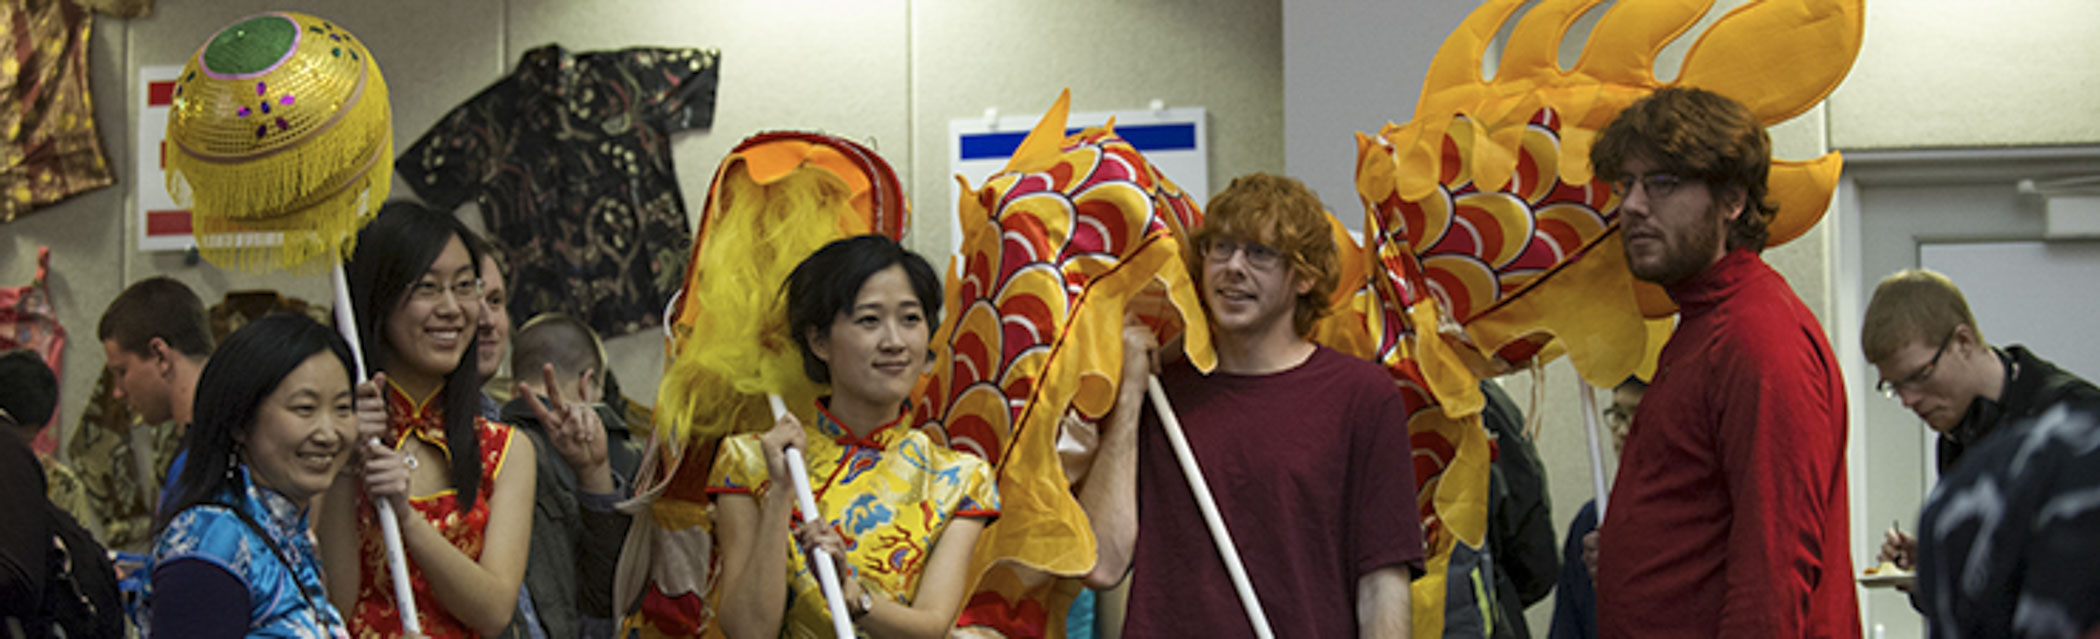 Students getting ready to perform the dragon dance at the Food Expo